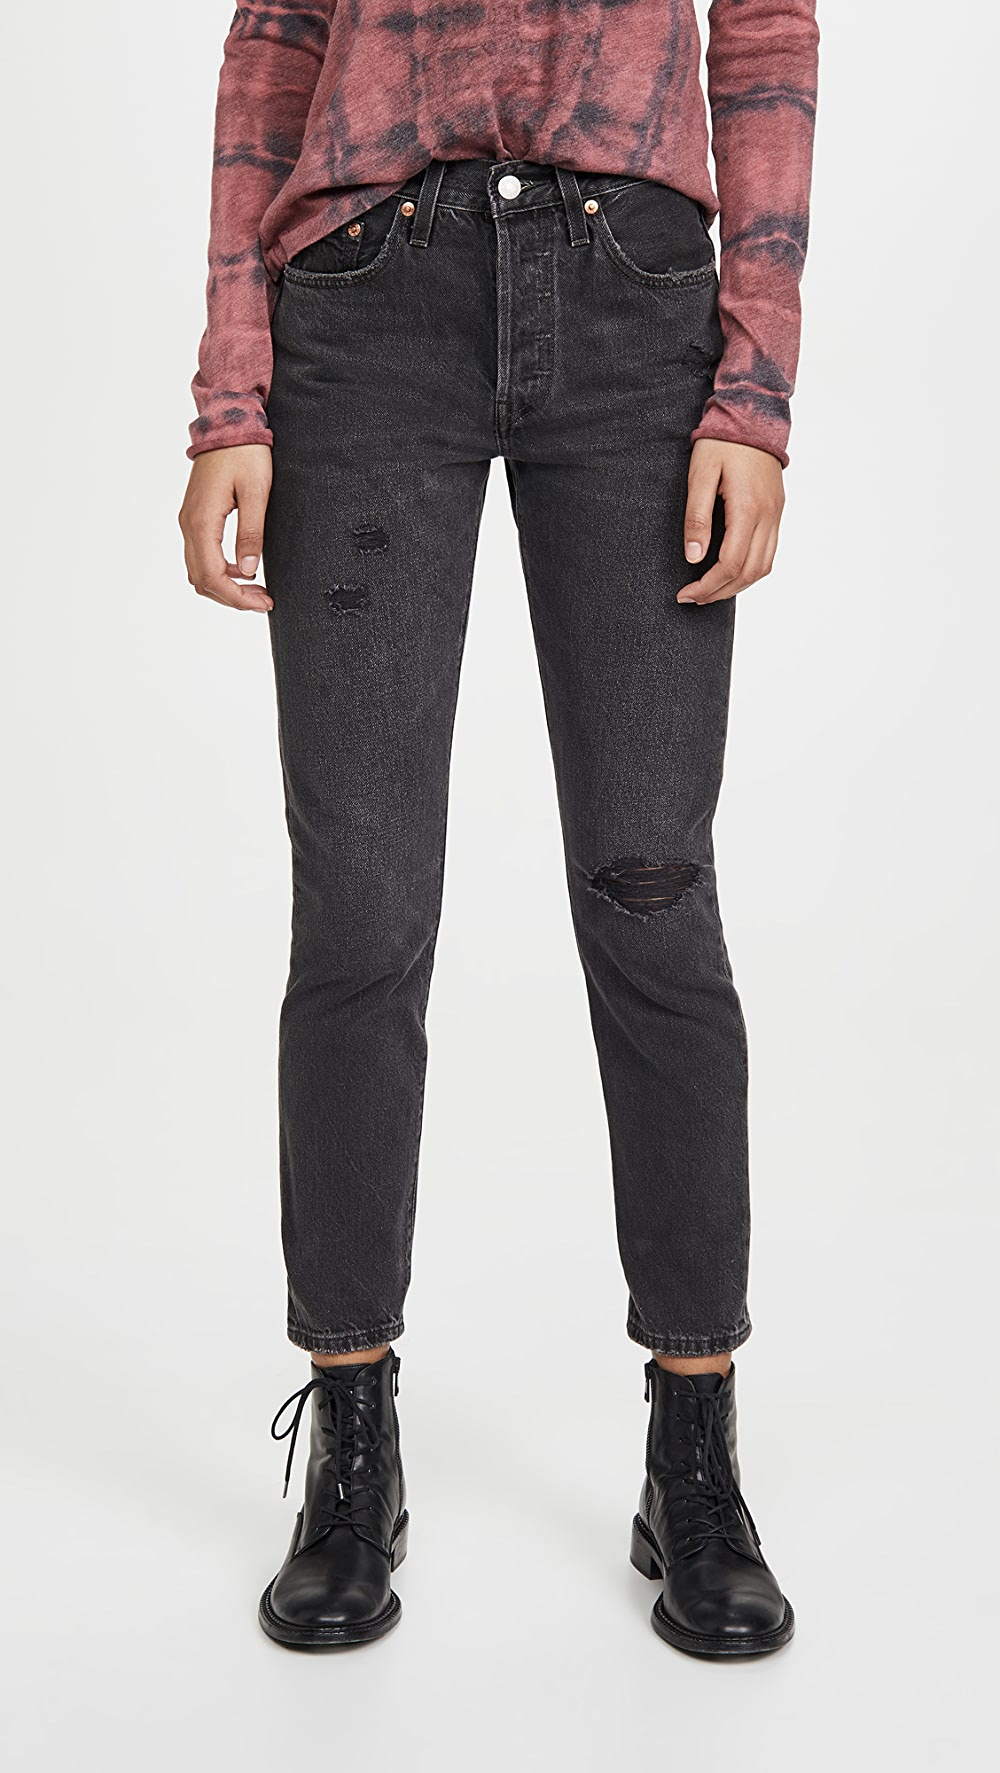 Collection Here Levi's - 501 Skinny Jeans At All Costs